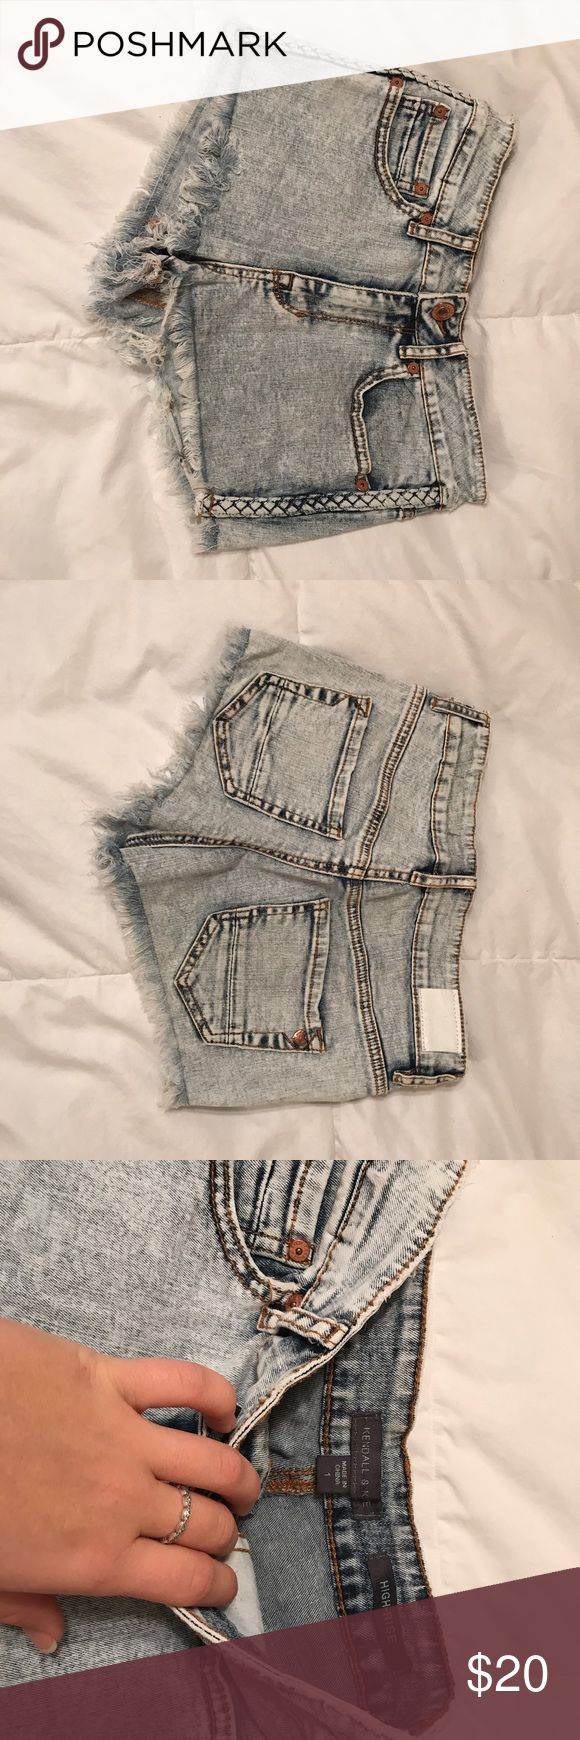 Kendall & Kylie Jean Shorts Kendall & Kylie, Size 1, jean shorts! The sides have a braided design with frayed bottoms! Worn only a few times and still in great condition. Kendall & Kylie Shorts Jean Shorts